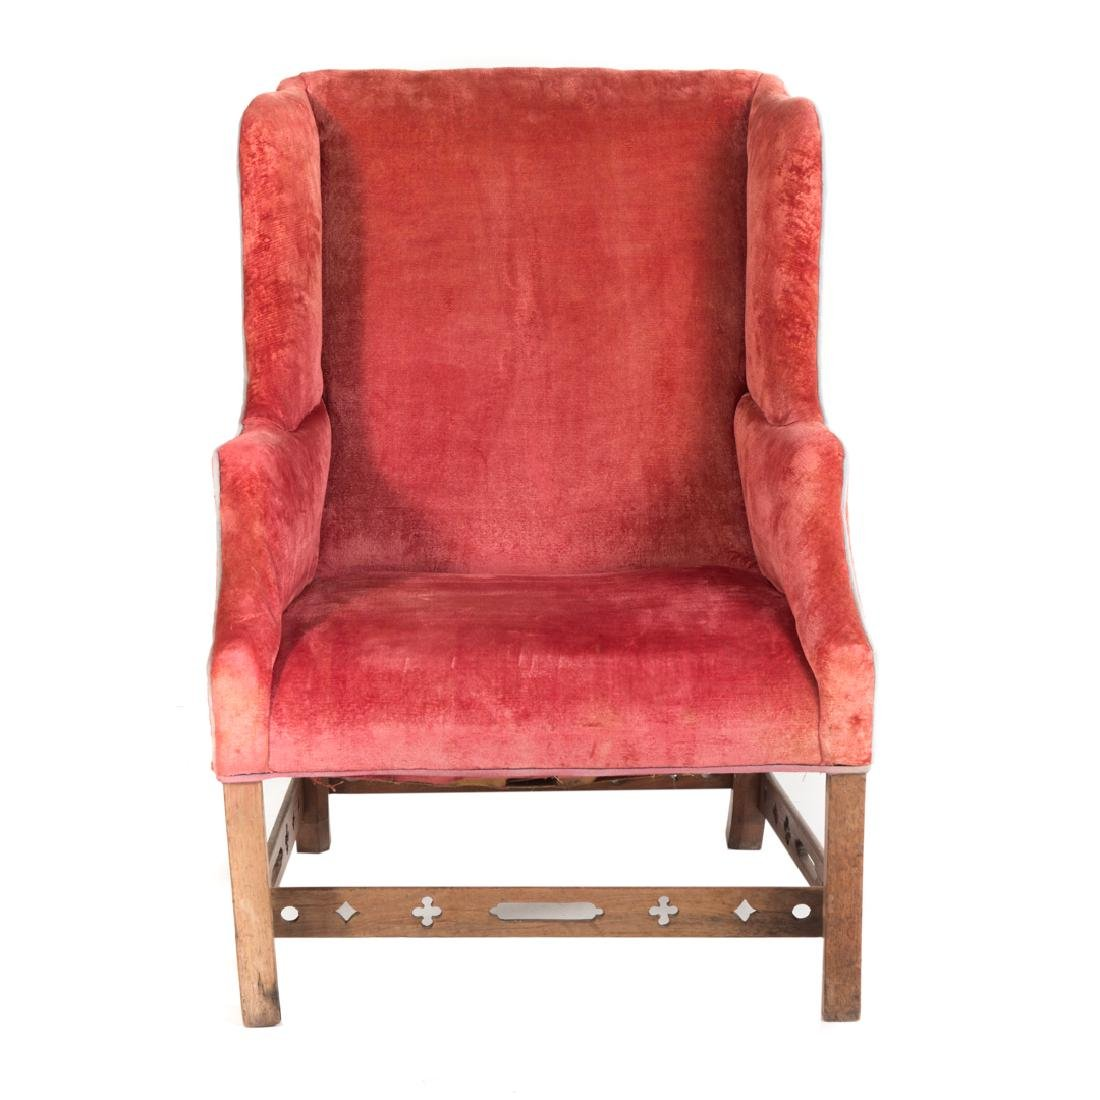 George III style mahogany upholstered wing chair